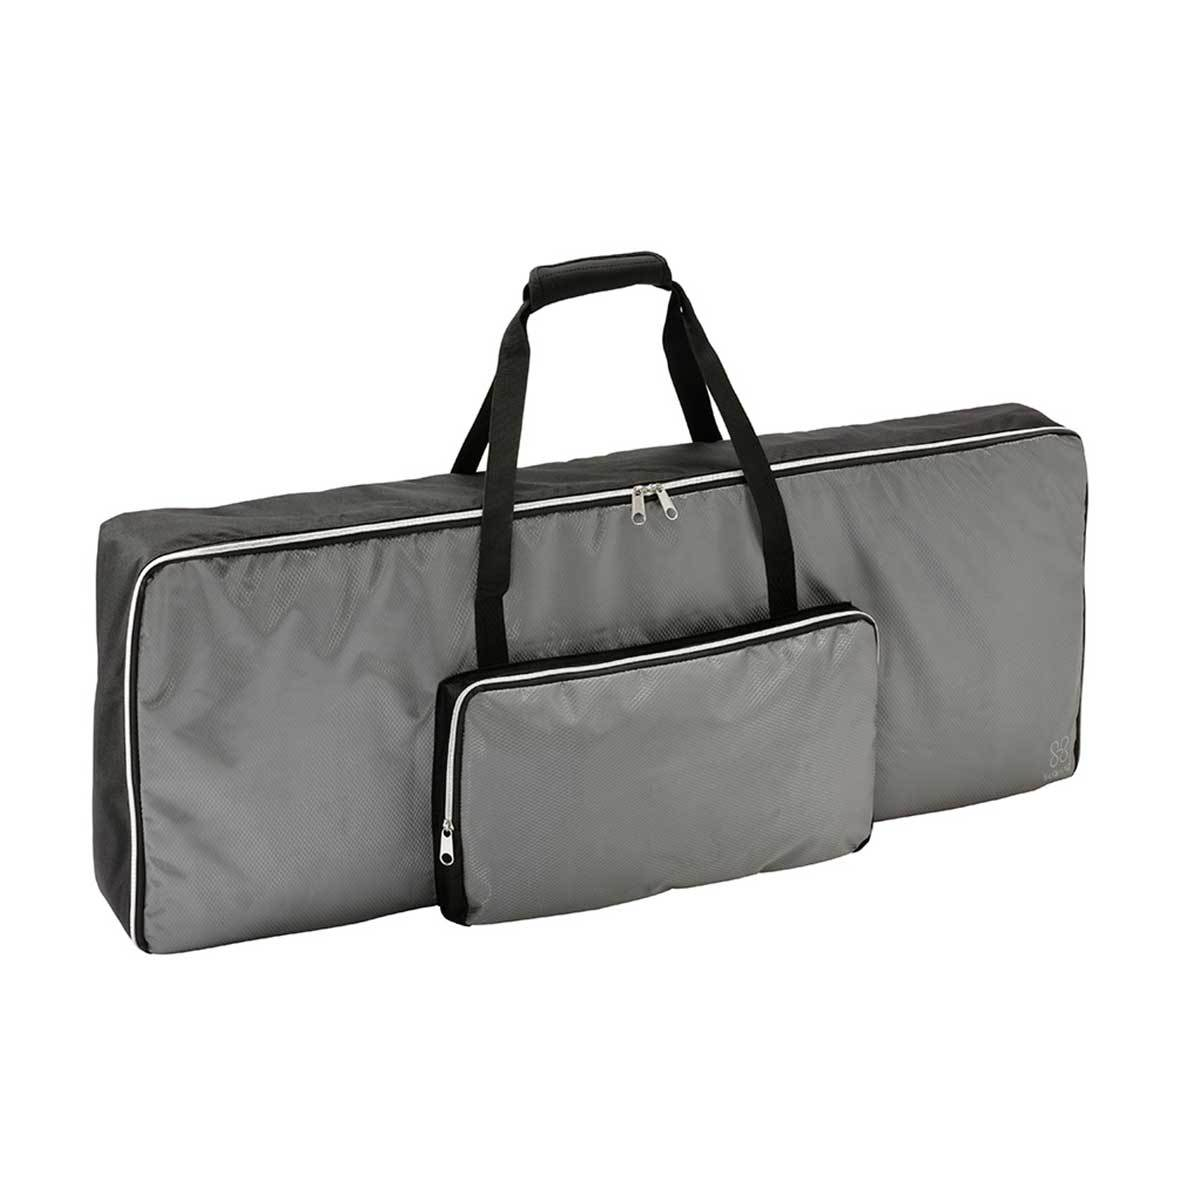 DJ Bags & Cases - Soft Carry Case For Korg EK-50/ PA Series And Other 61 Note Keyboards